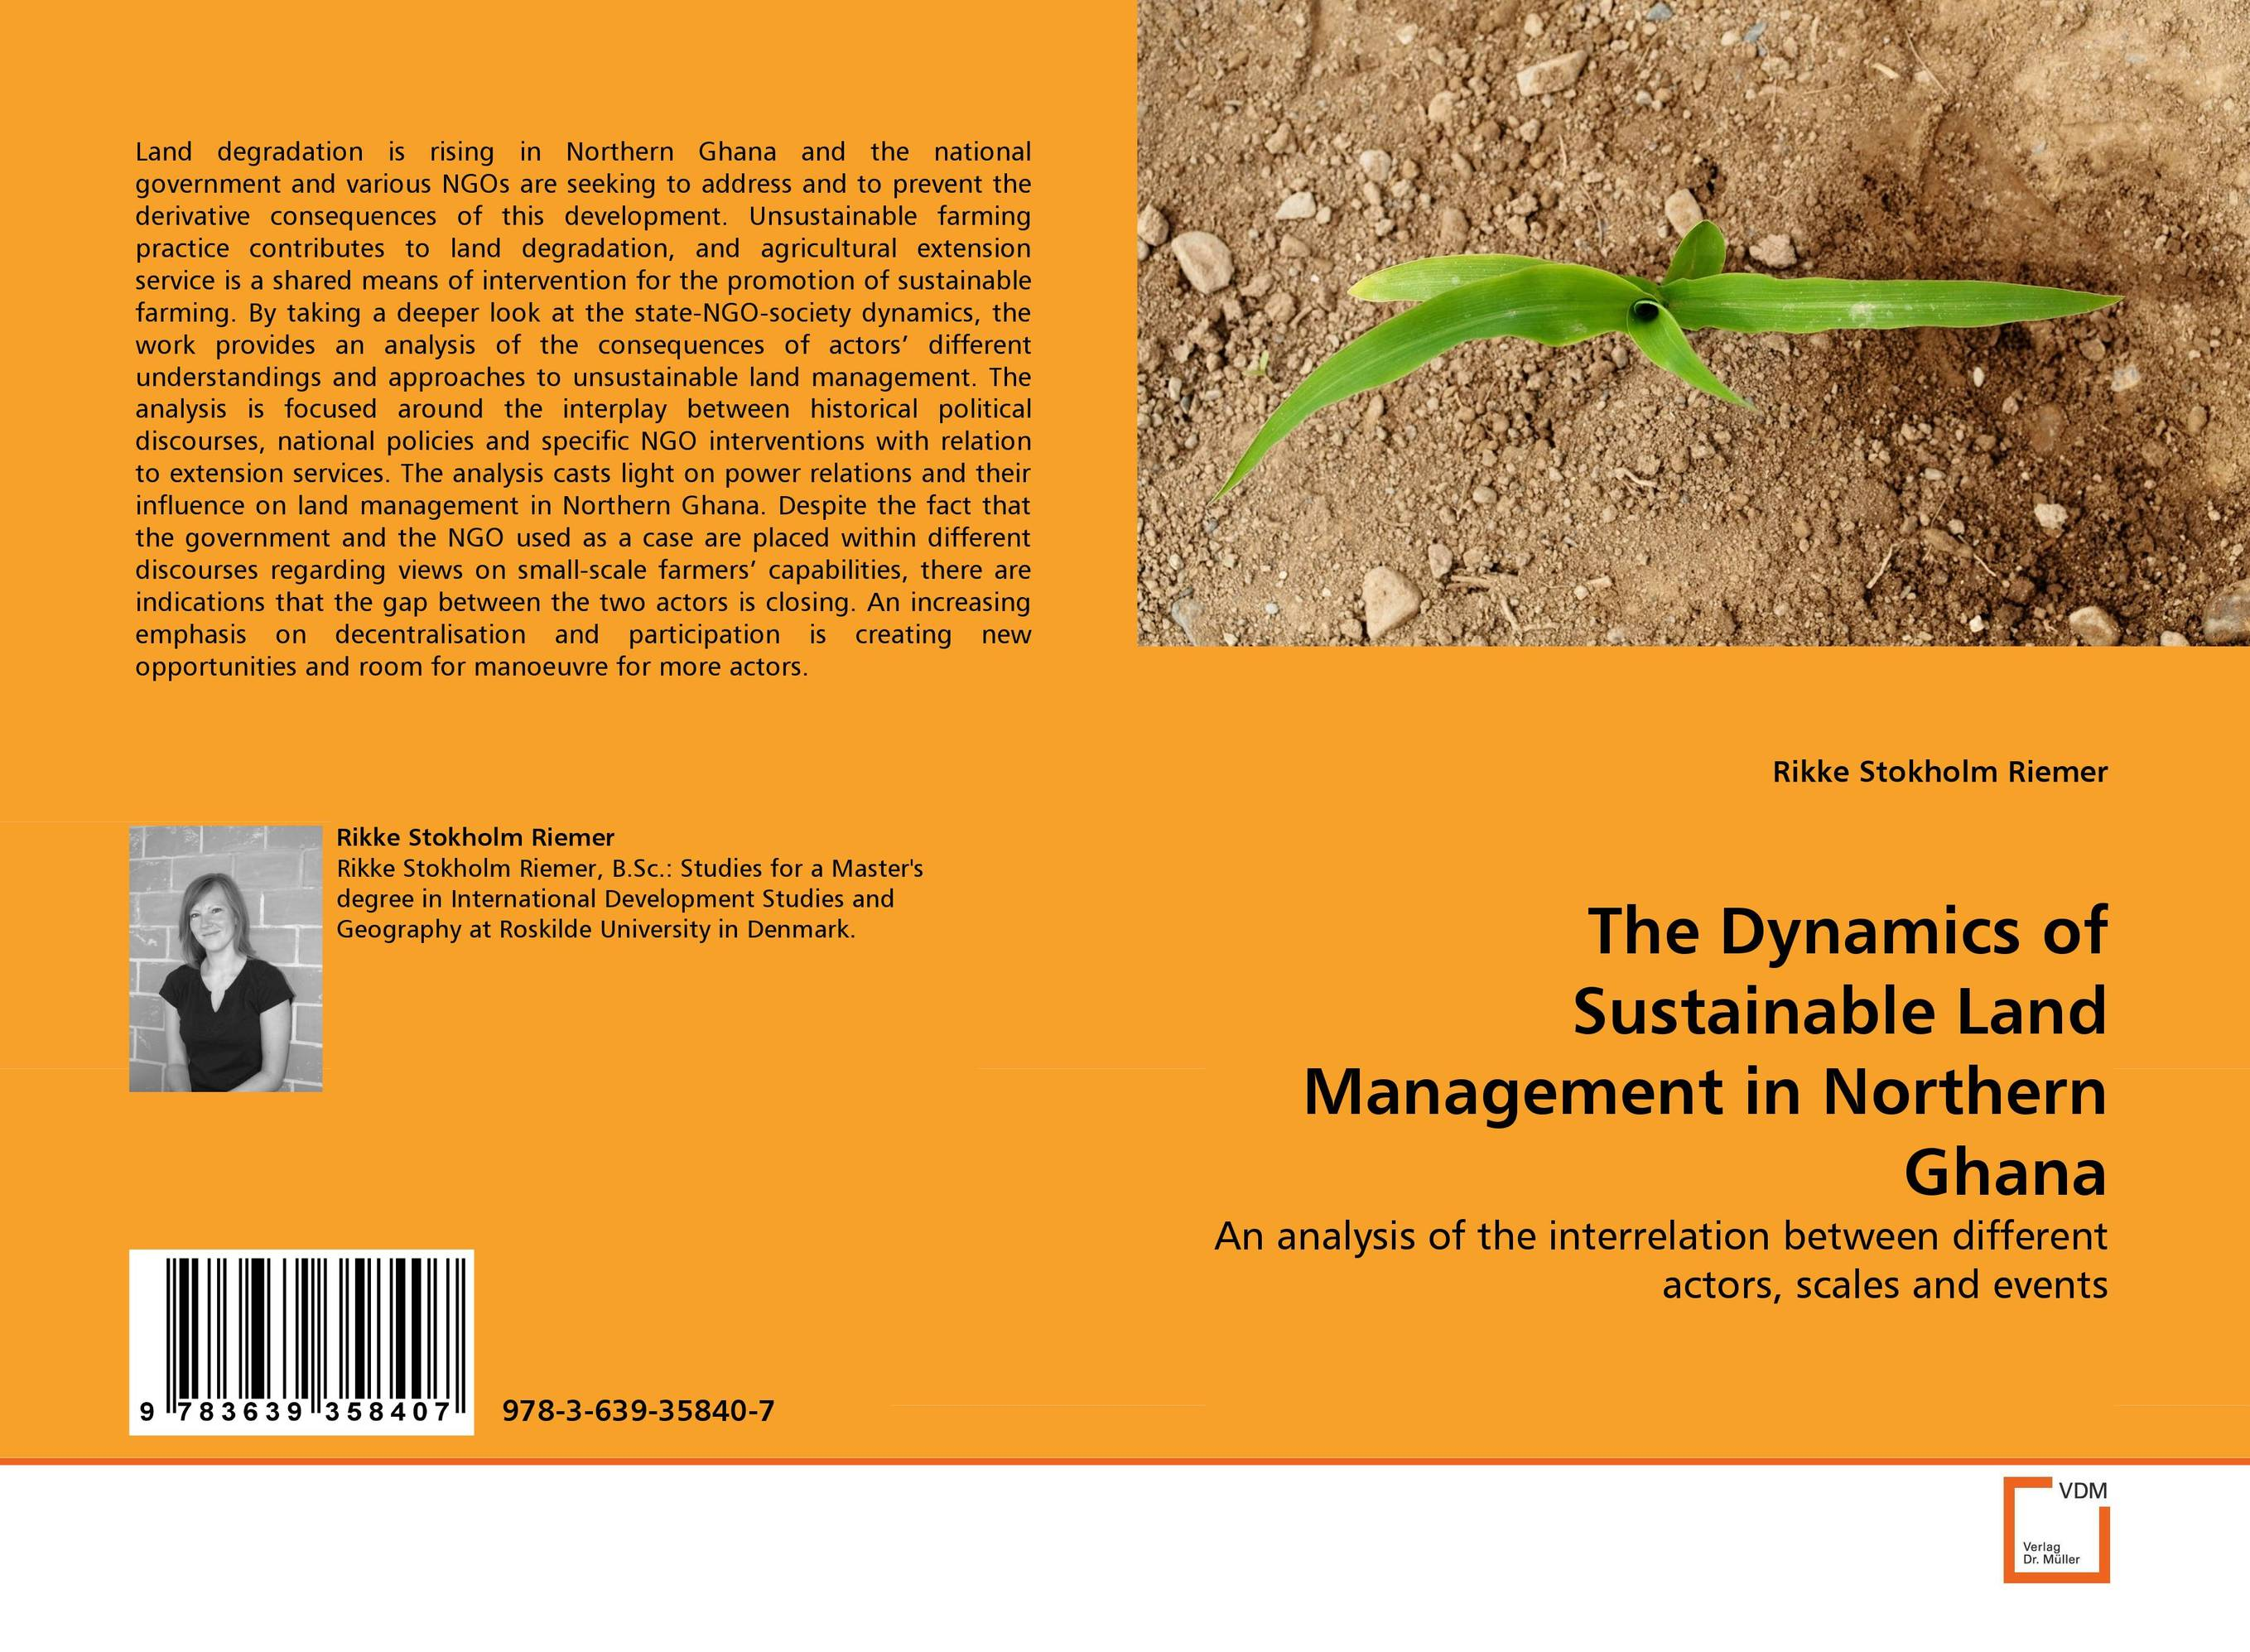 The Dynamics of Sustainable Land Management in Northern Ghana abdul rauf yussif and seidu al hassan entrepreneurial capabilities of shea butter processors in ghana